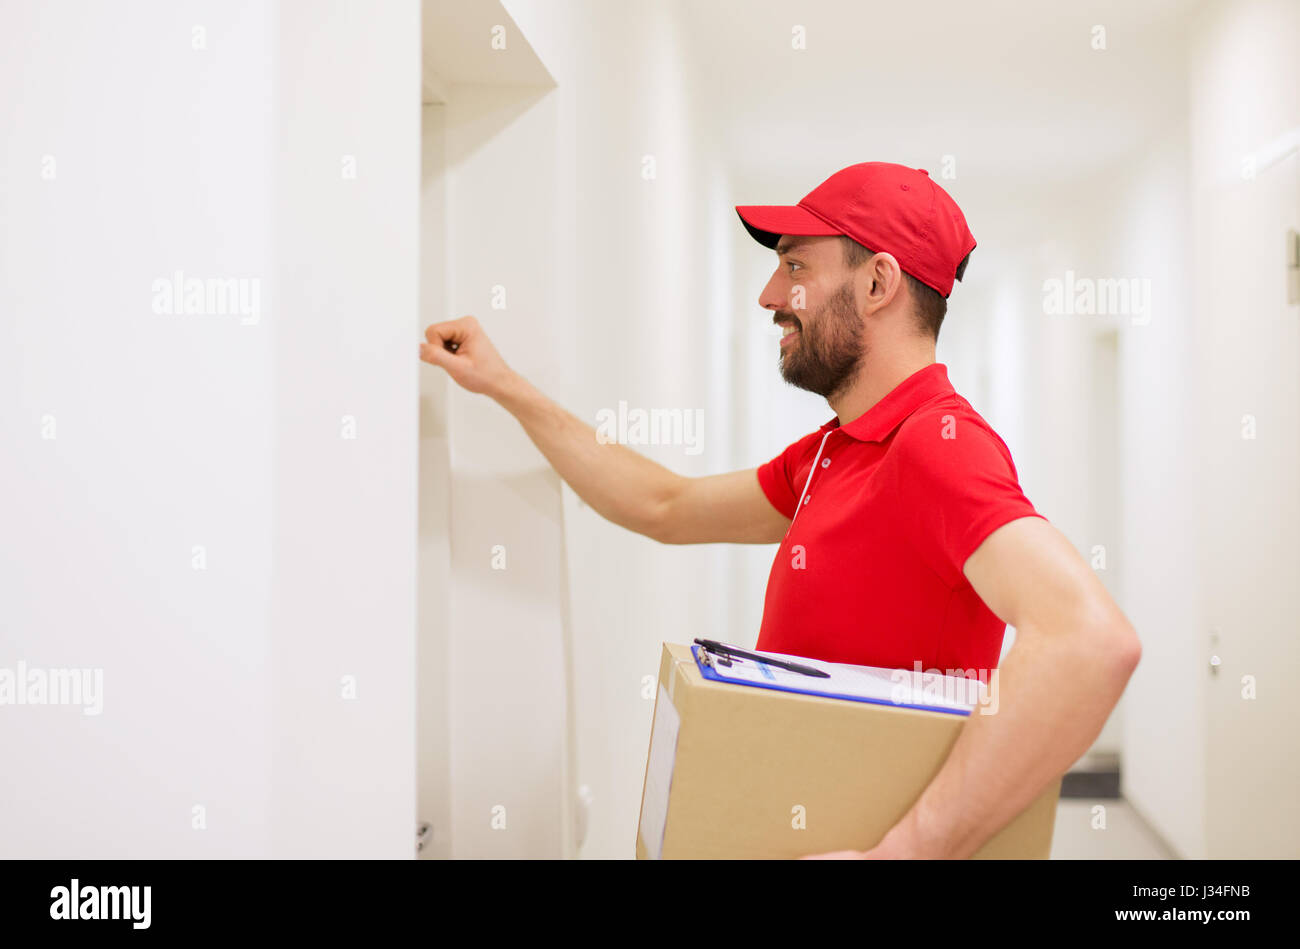 delivery man with parcel box knocking on door  sc 1 st  Alamy & delivery man with parcel box knocking on door Stock Photo Royalty ... pezcame.com